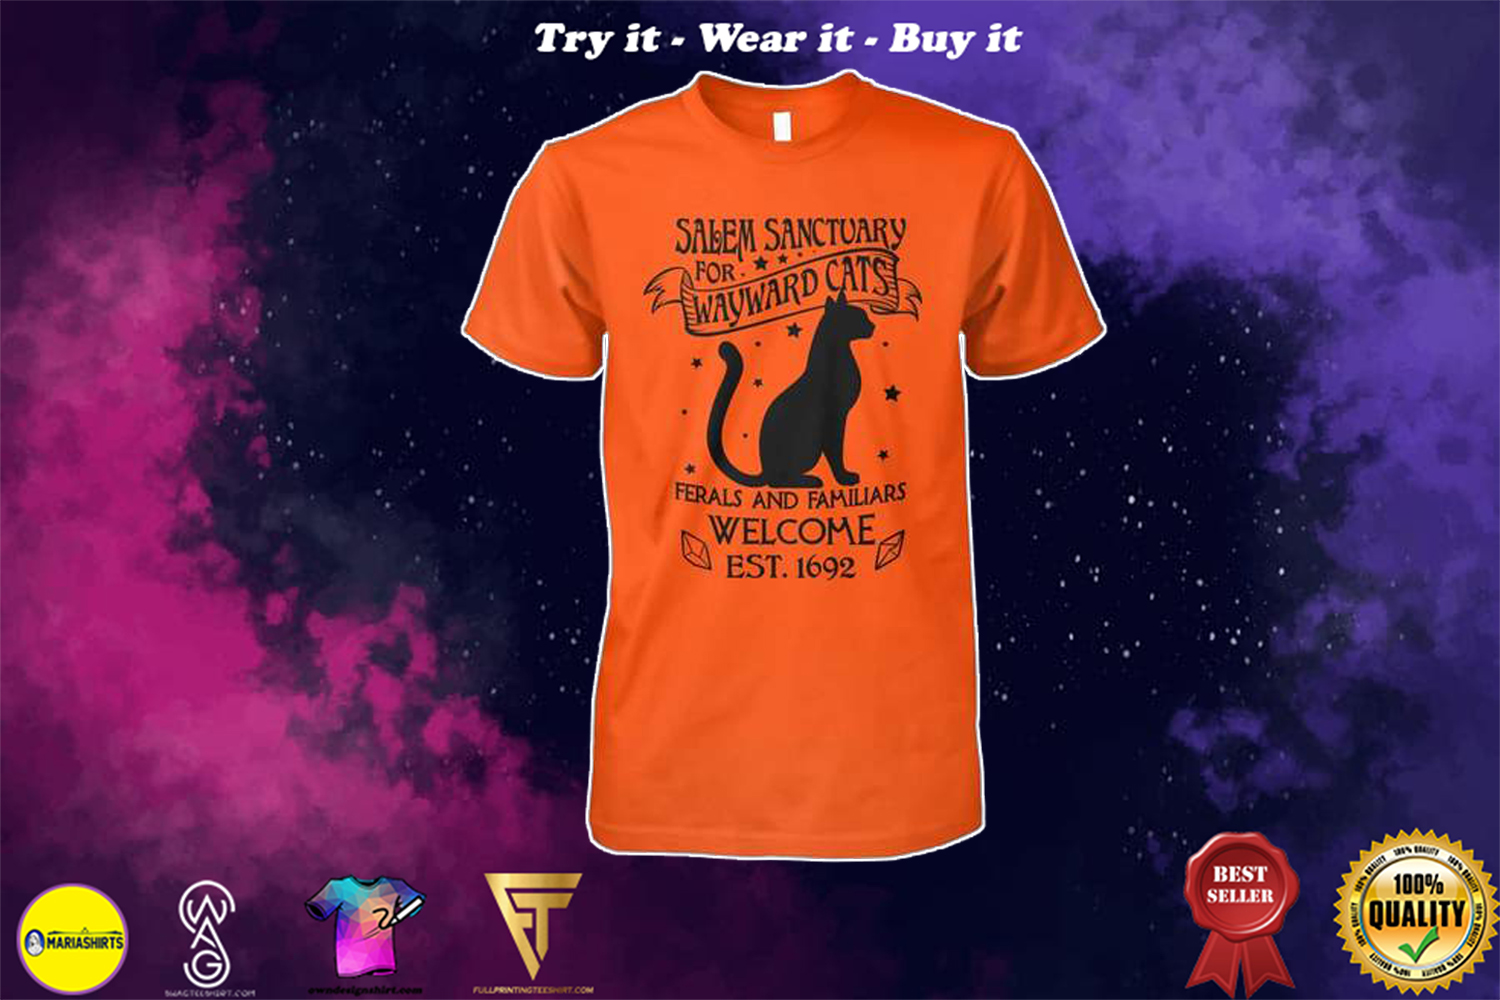 halloween salem sanctuary for wayward cats ferals and familiars welcome est 1692 shirt